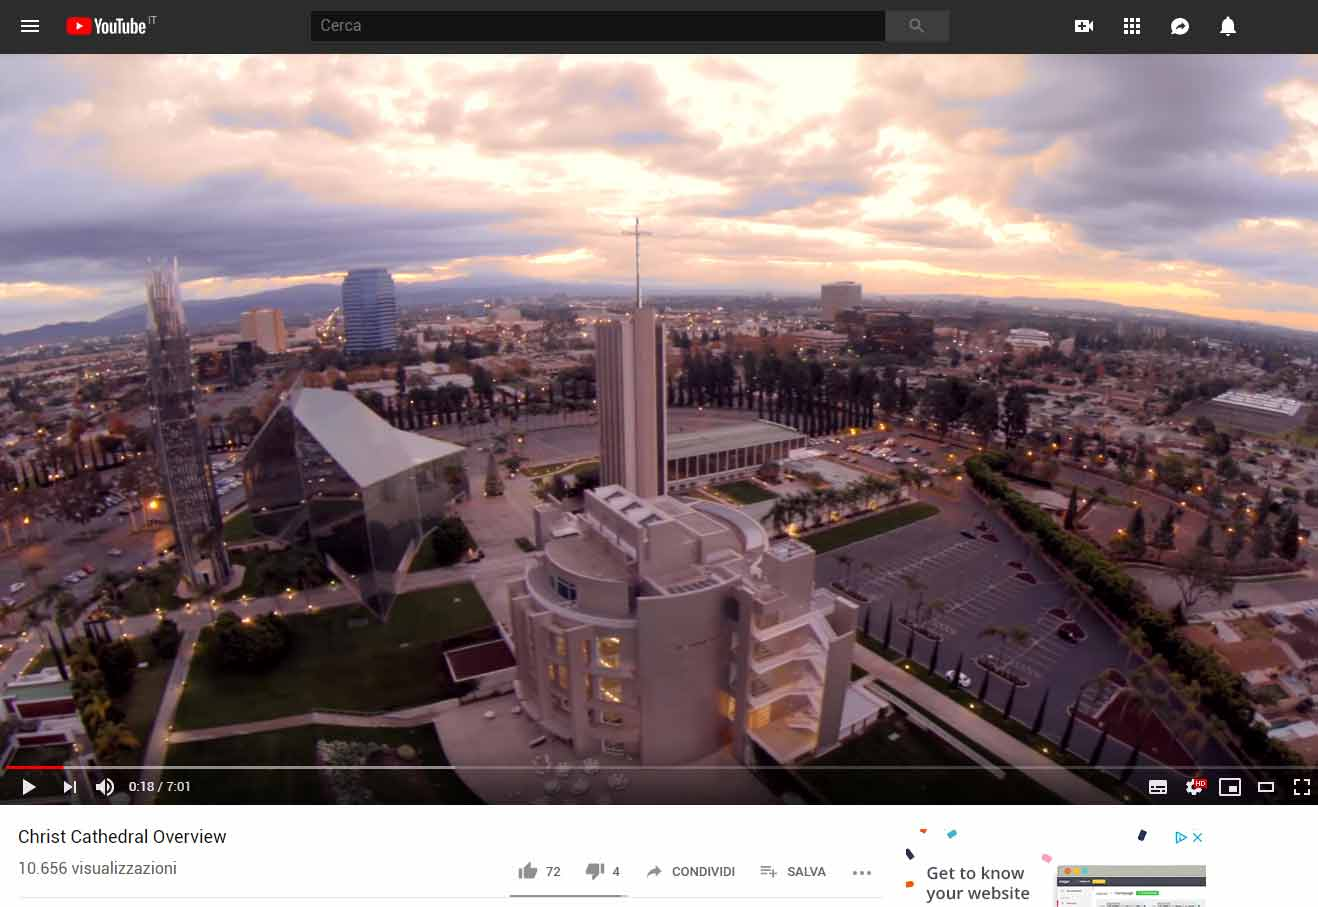 Video Christ Cathedral Overwiev